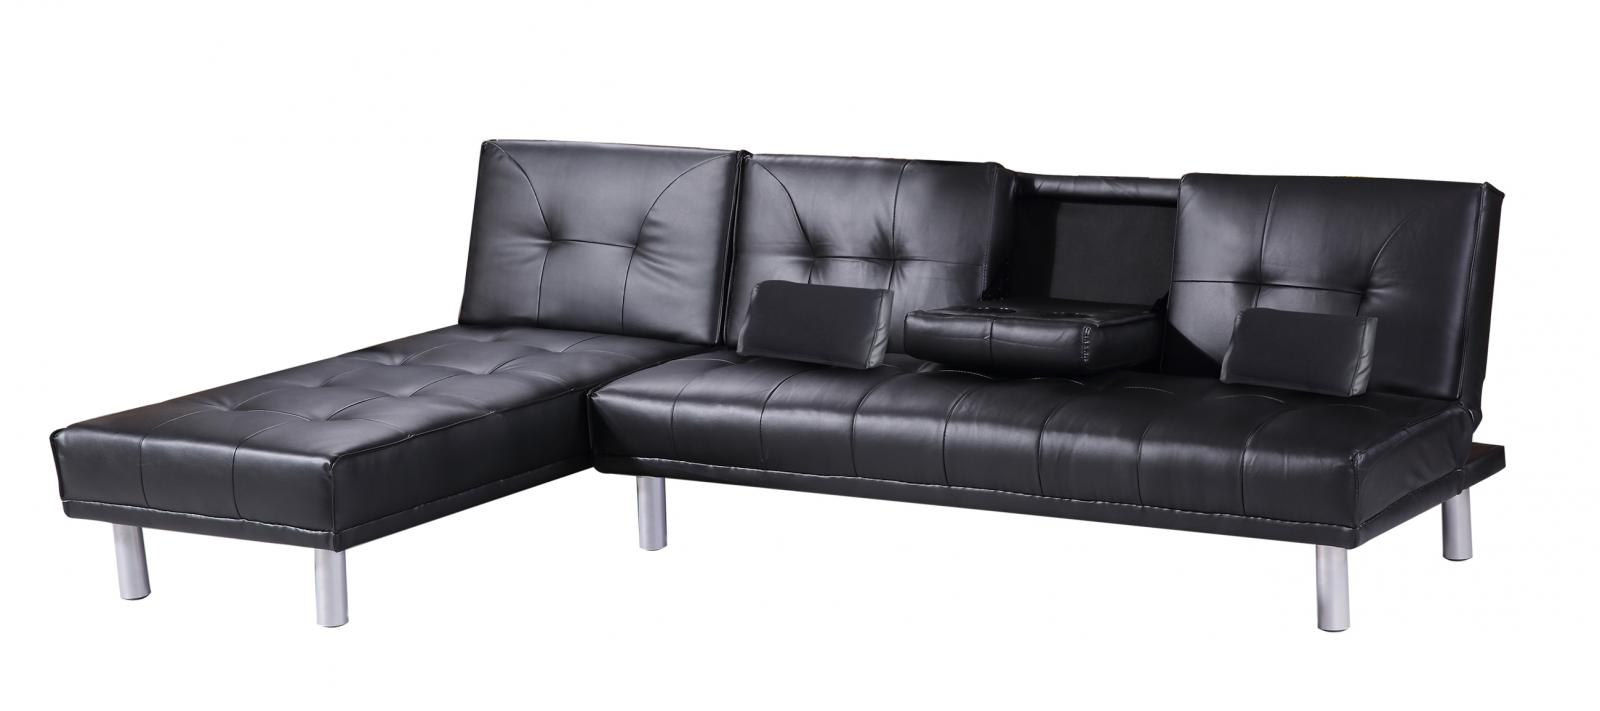 Modern 4 seater l shaped corner faux leather sofa bed for 4 seater sofa with chaise